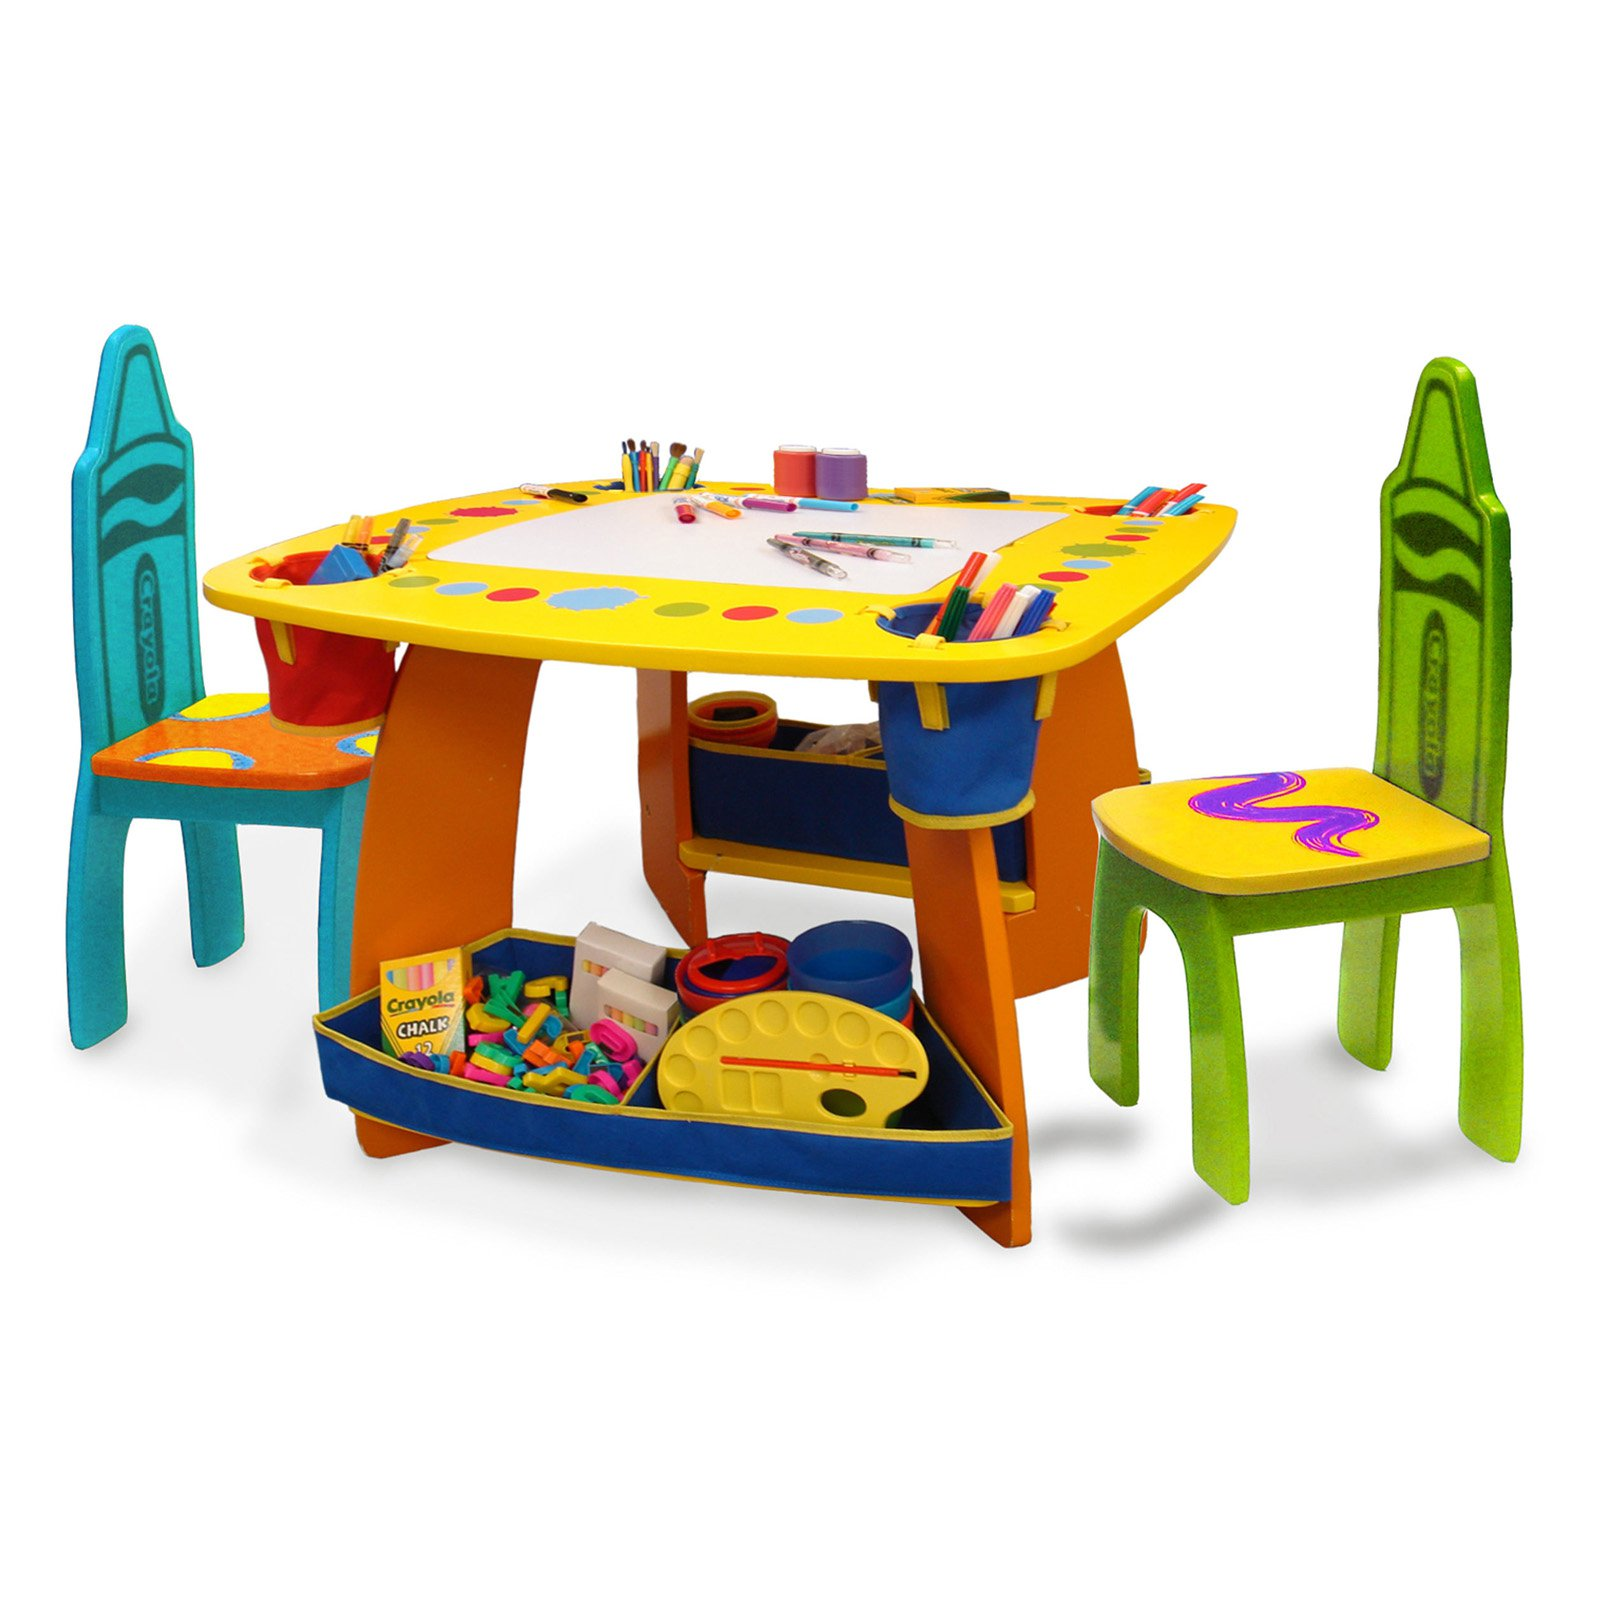 crayola activity table and chair set